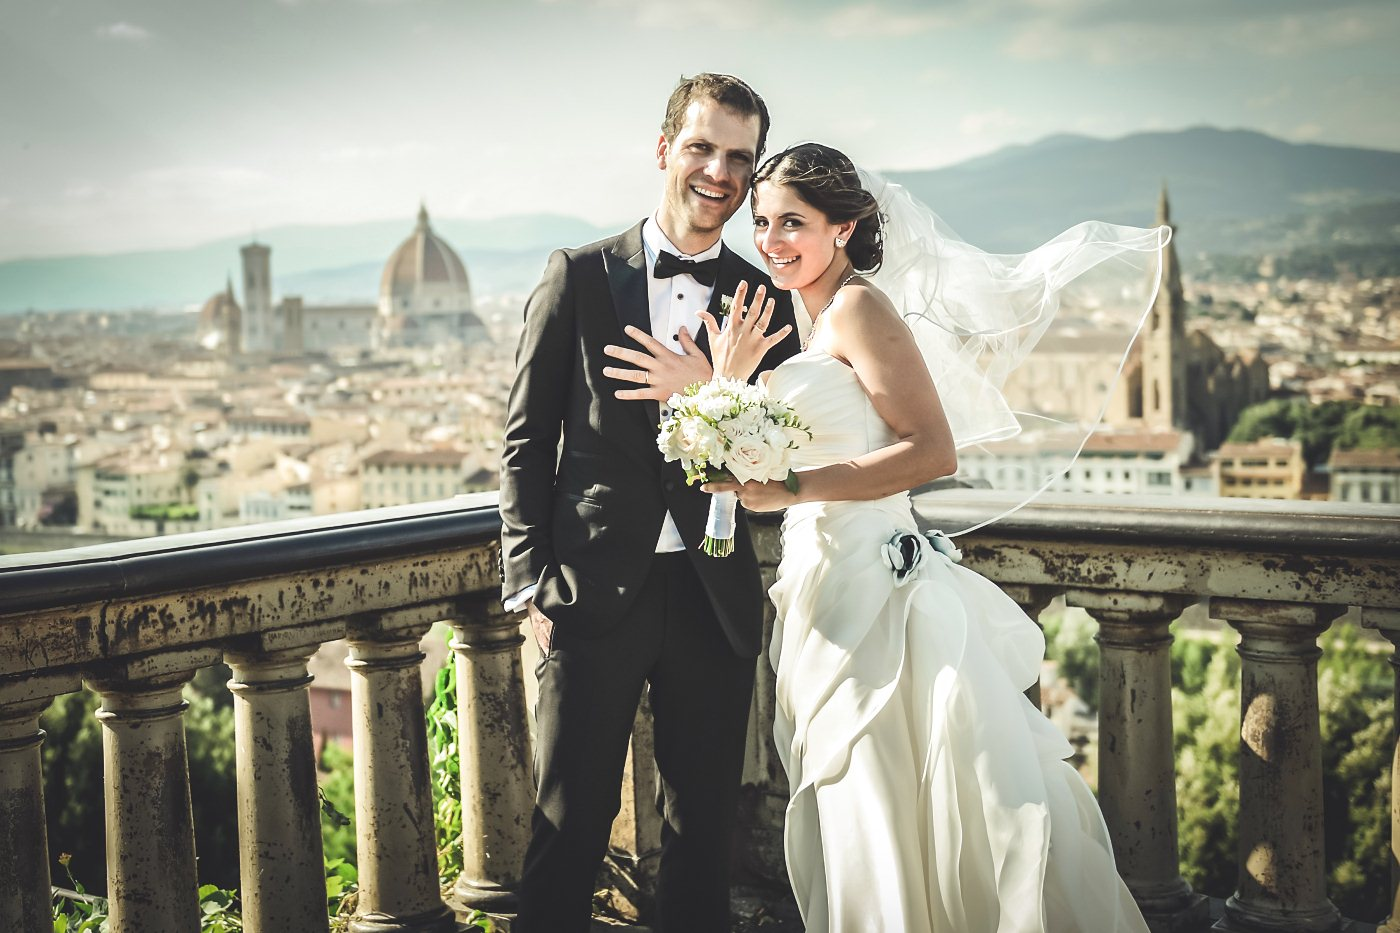 wedding photo villa le piazzole_12.jpg